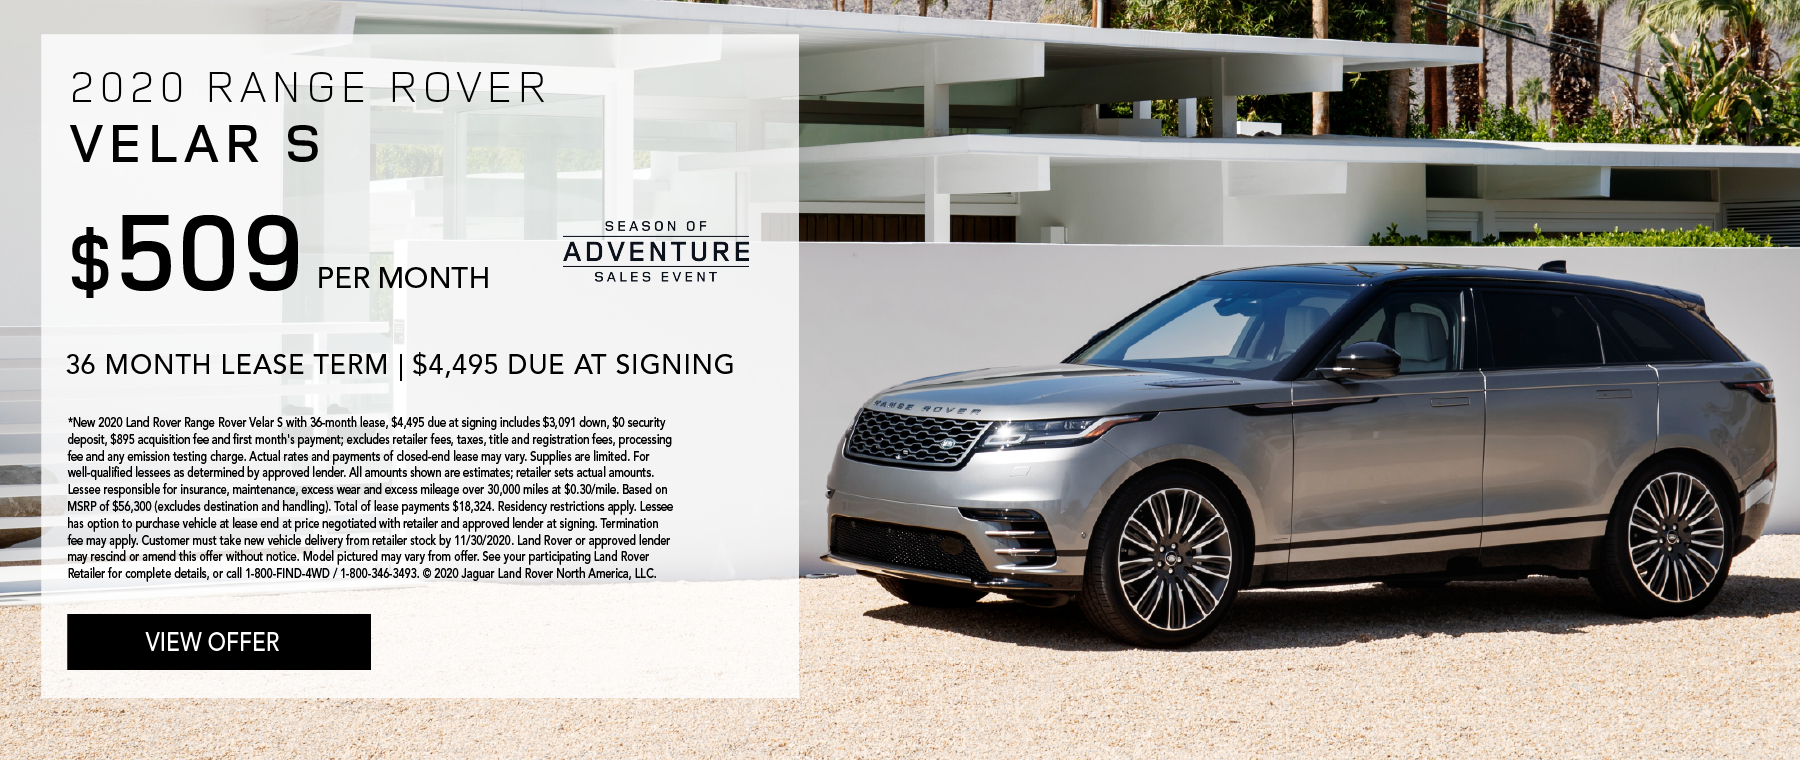 2020 RANGE ROVER VELAR S. $509 PER MONTH. 36 MONTH LEASE TERM. $4,495 CASH DUE AT SIGNING. $0 SECURITY DEPOSIT. 10,000 MILES PER YEAR. EXCLUDES RETAILER FEES, TAXES, TITLE AND REGISTRATION FEES, PROCESSING FEE AND ANY EMISSION TESTING CHARGE. ENDS 11/30/2020.